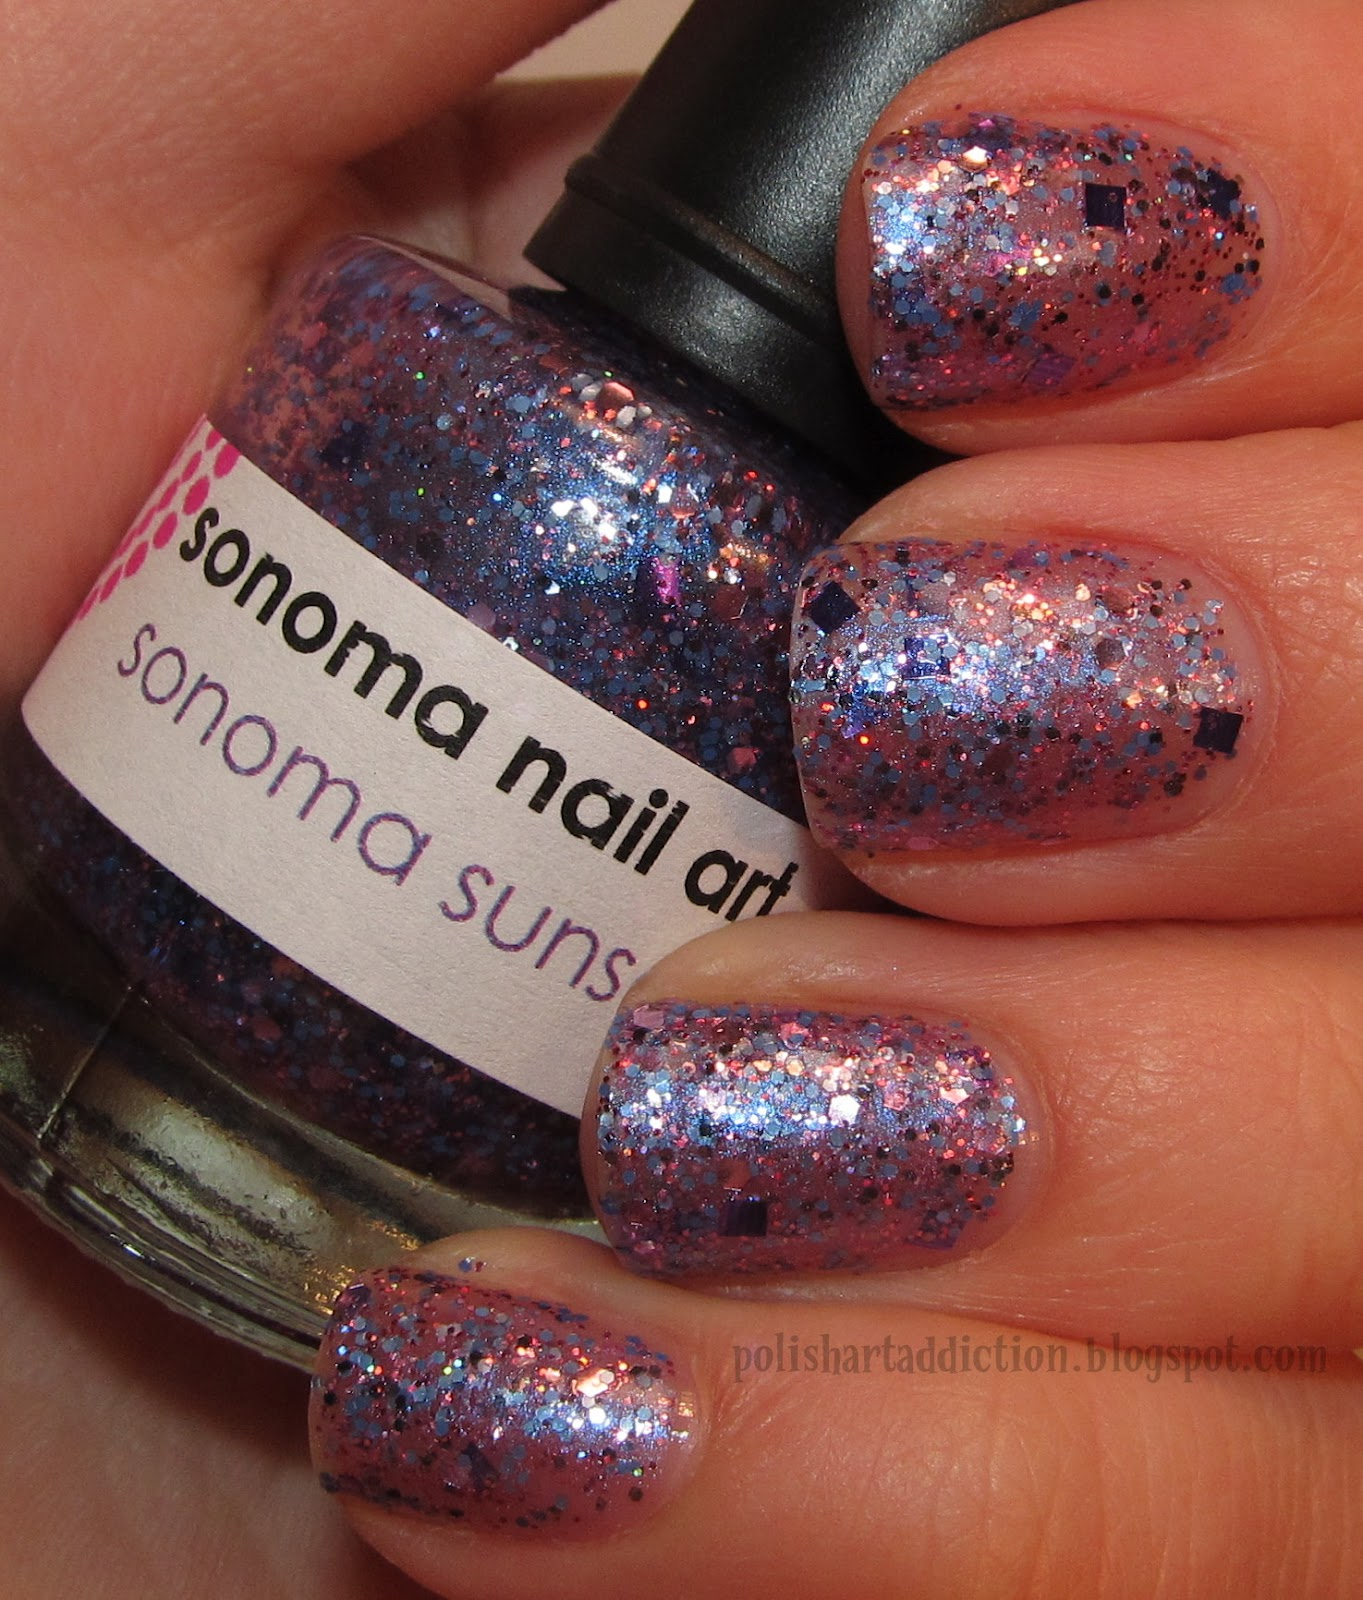 Sonoma Nail Art Polish - Sonoma Sunset